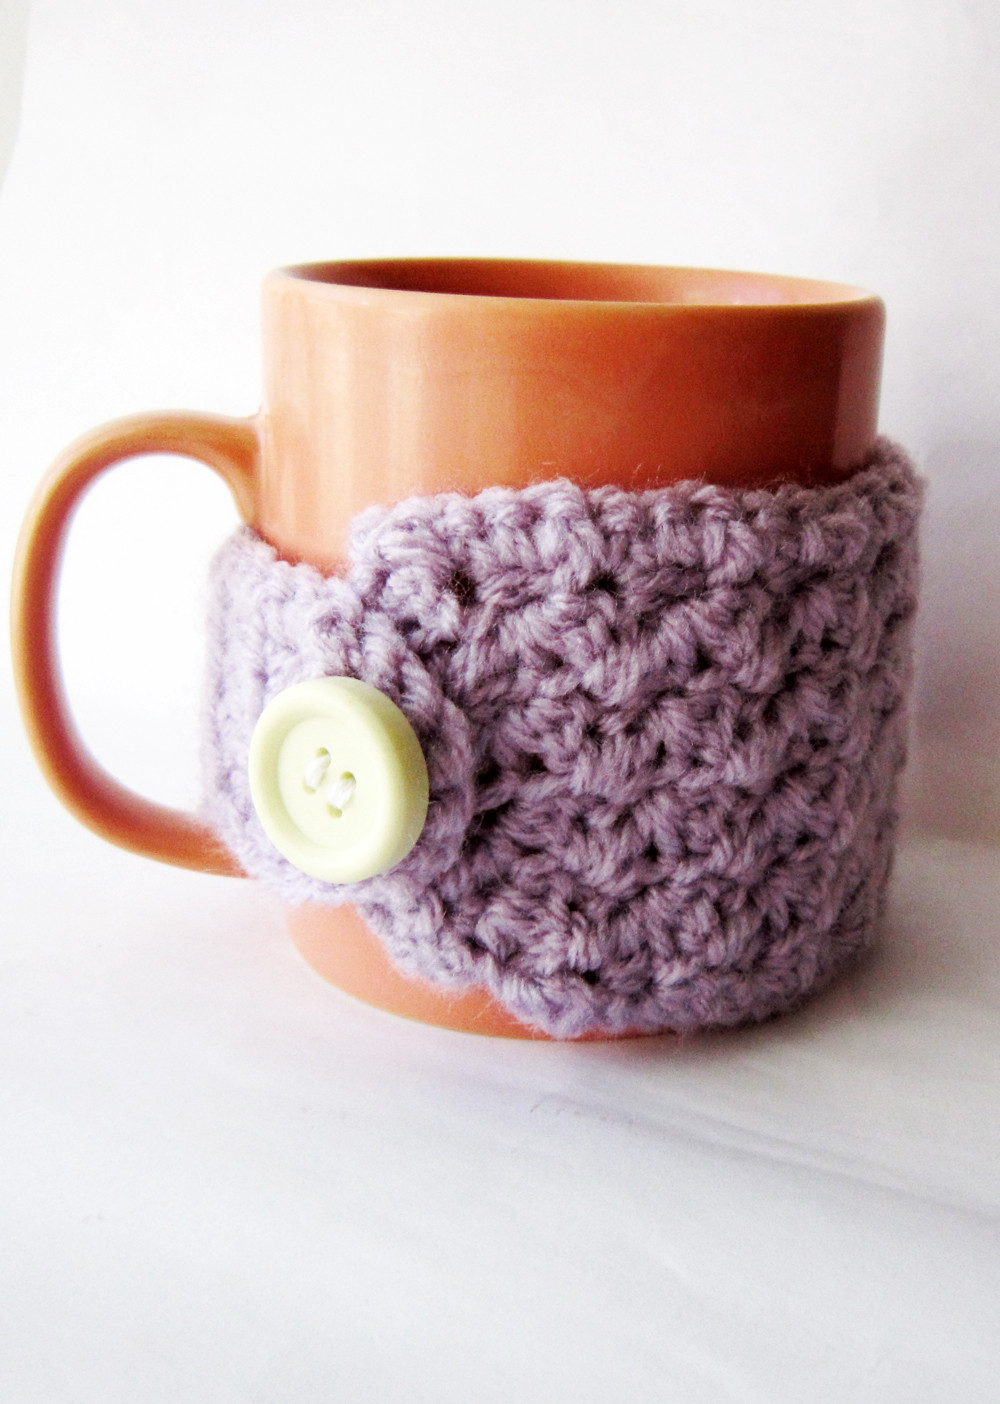 Crochet Coffee Cup Cozy Inspirational Easy Crochet Mug Cozy Free Pattern Akamatra Of Crochet Coffee Cup Cozy Awesome Crochet and Other Stuff Crochet A Mug Cozy Free Pattern